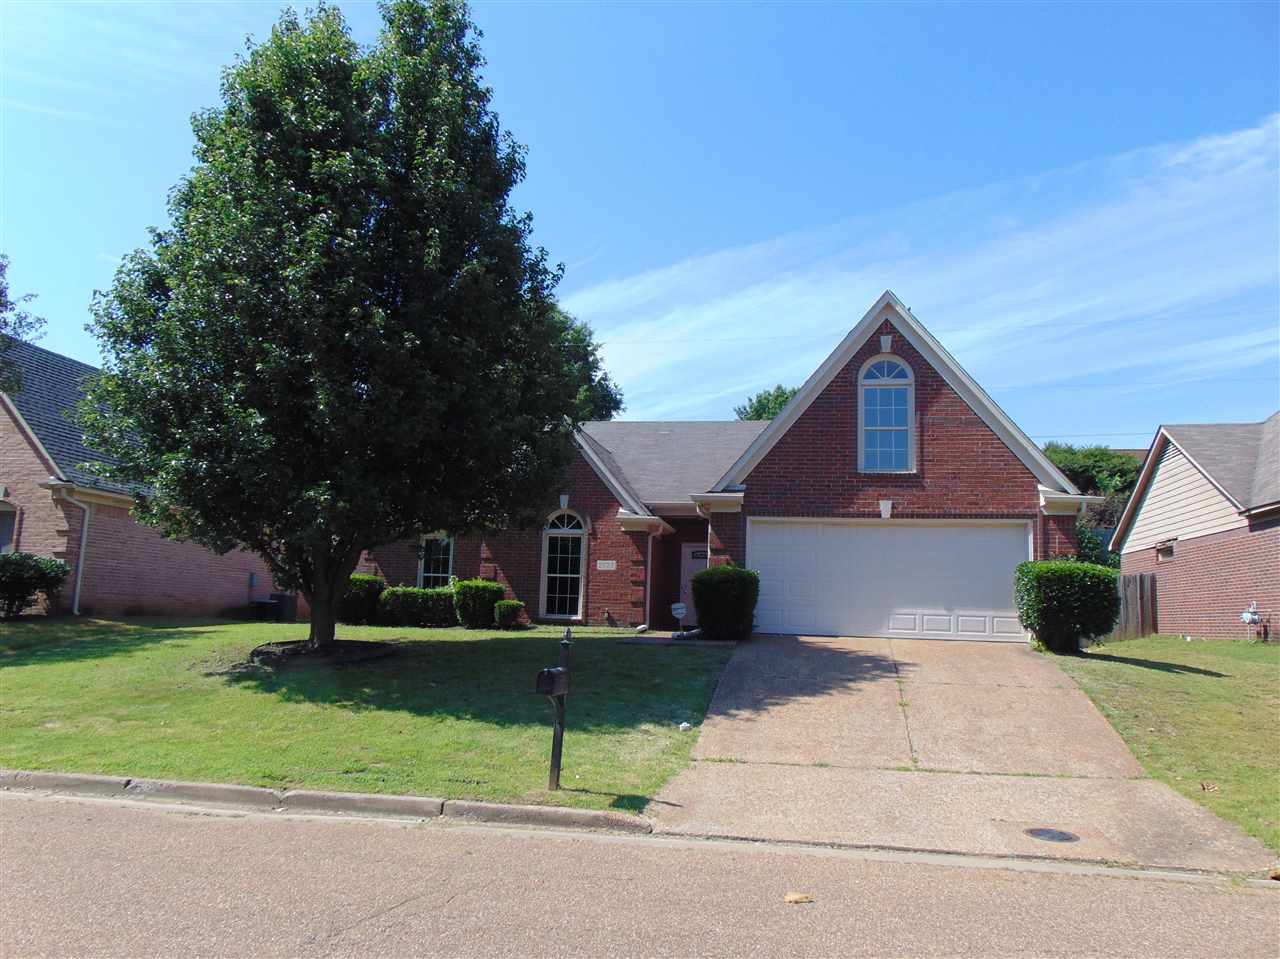 2723 Country Glade Memphis, TN 38016 - MLS #: 10028665